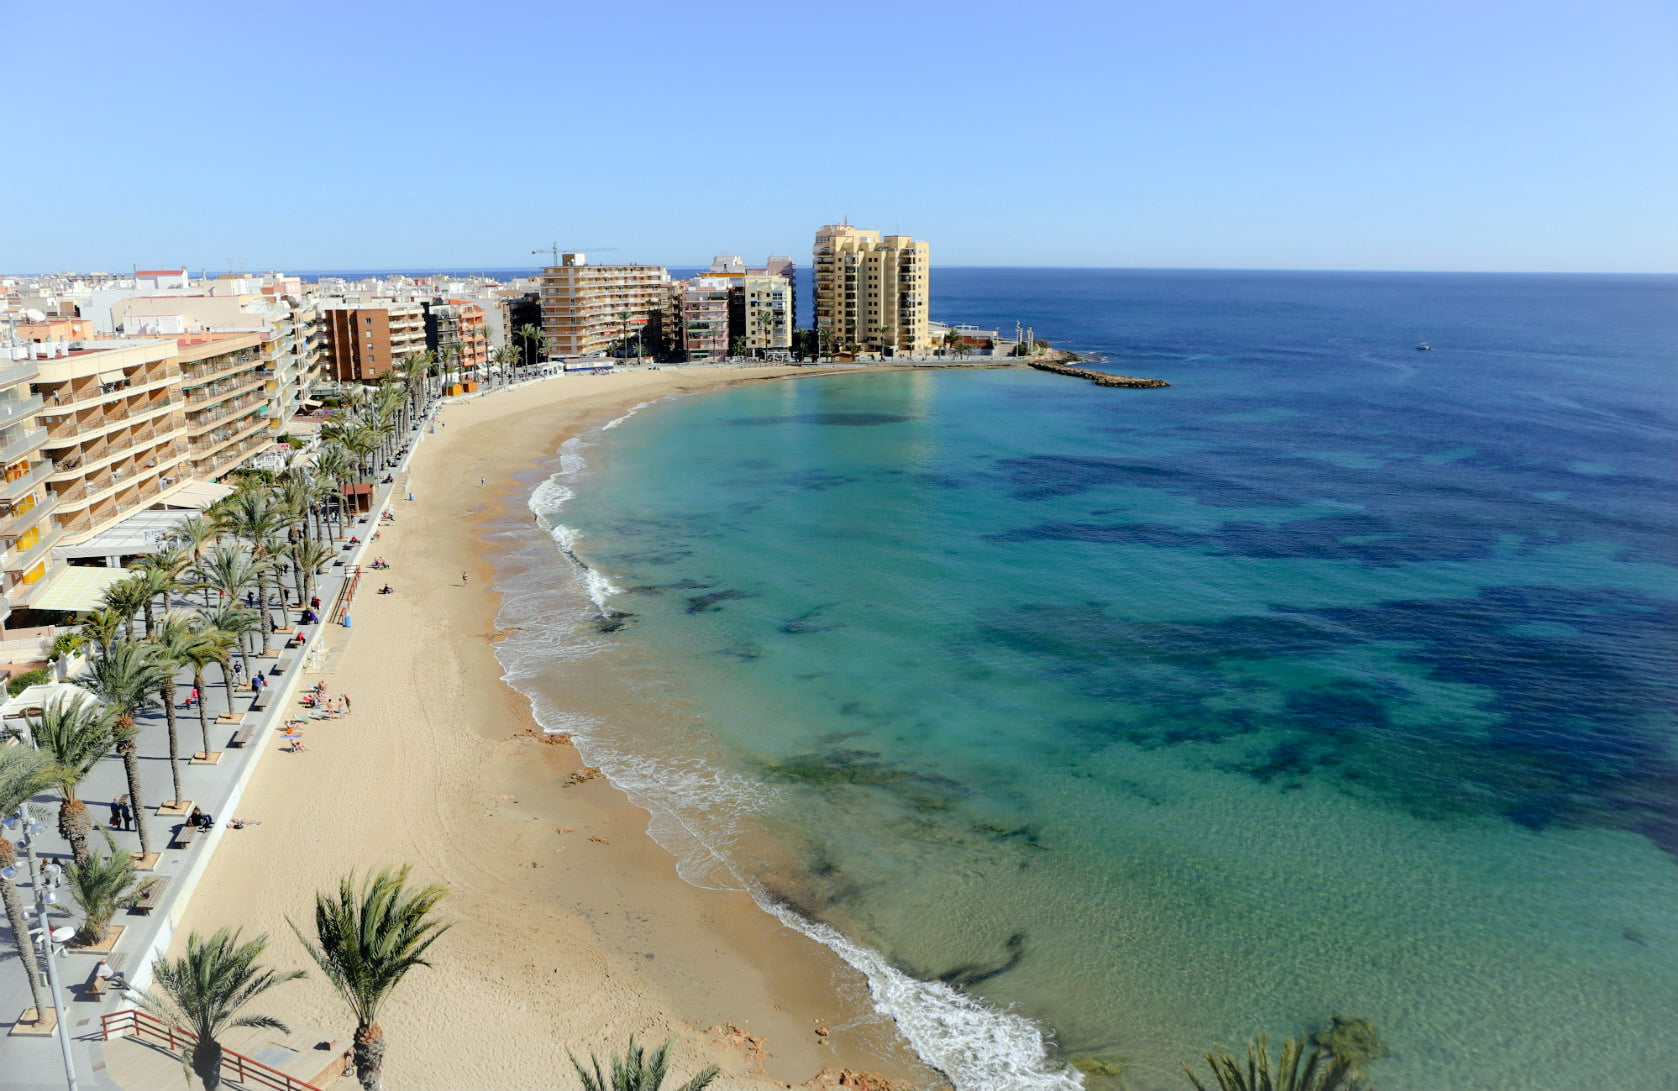 Things to do when visiting Las Colinas - Torrevieja